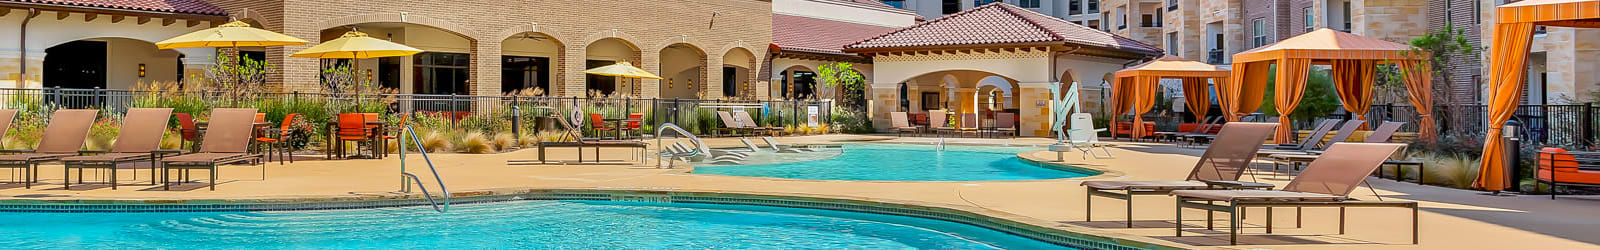 Photos at Villas at the Rim in San Antonio, Texas